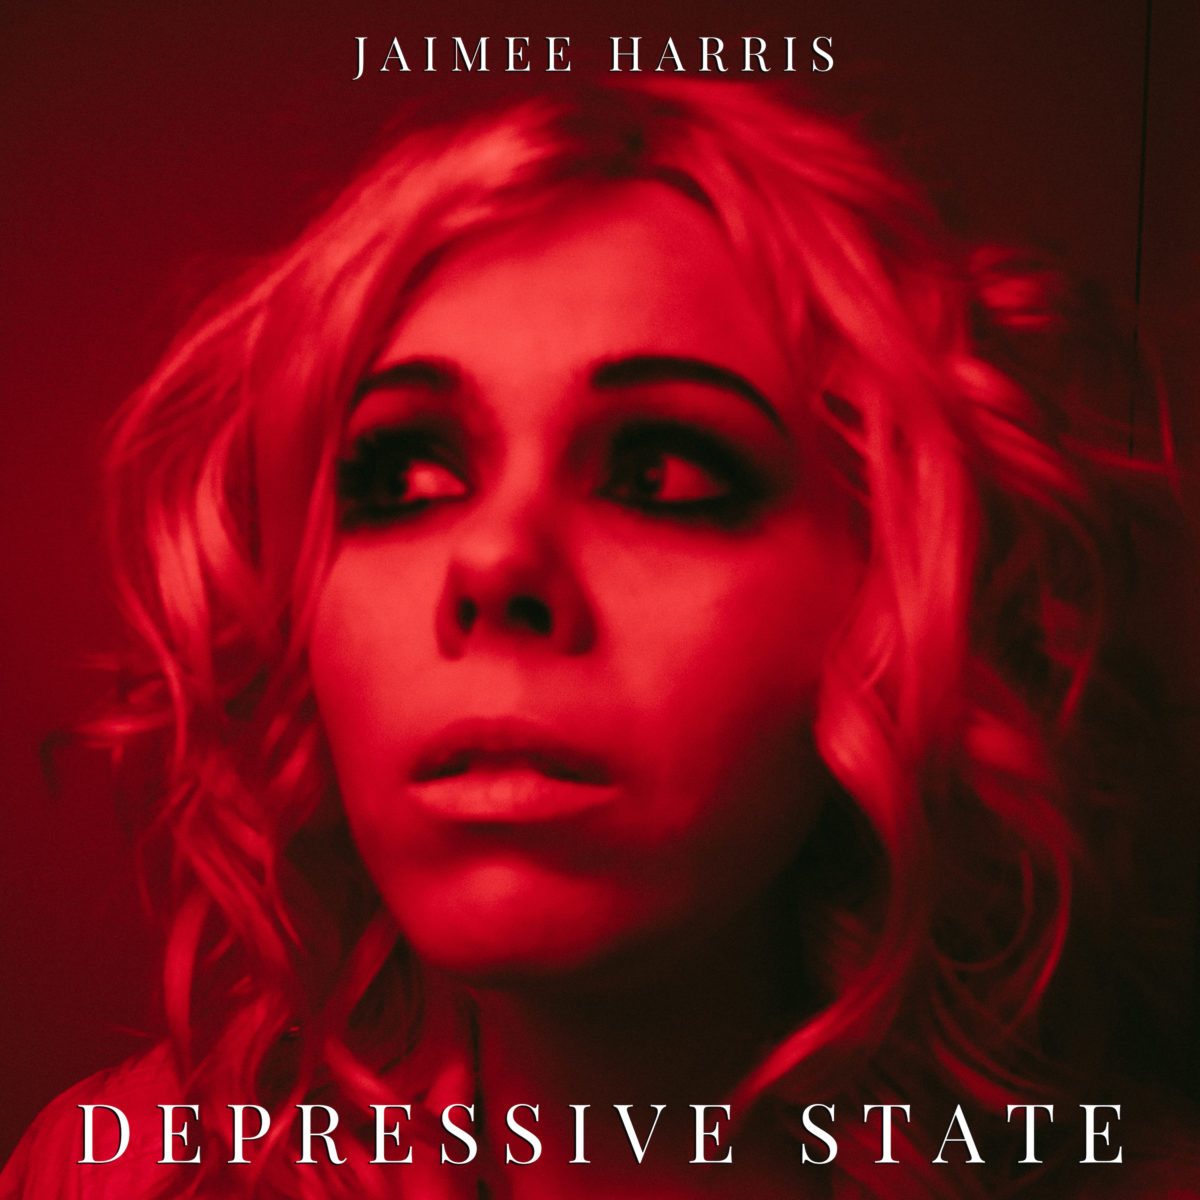 JAIMEE HARRIS Releases debut single in the Benelux...